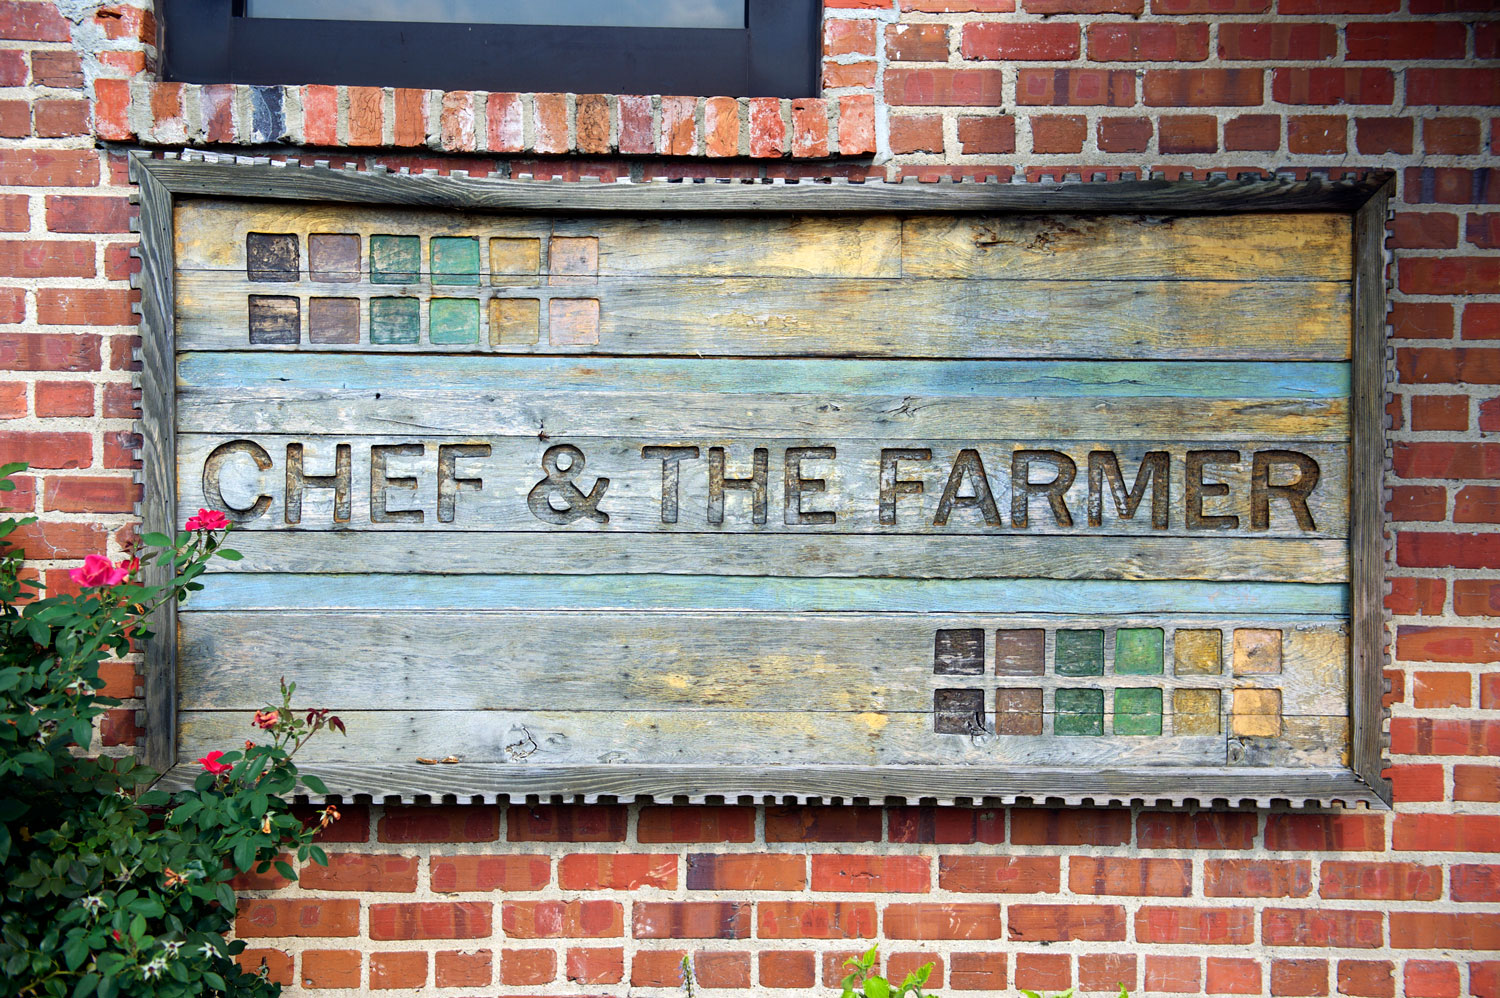 chef-the-farmer-sign-credit-doug-young